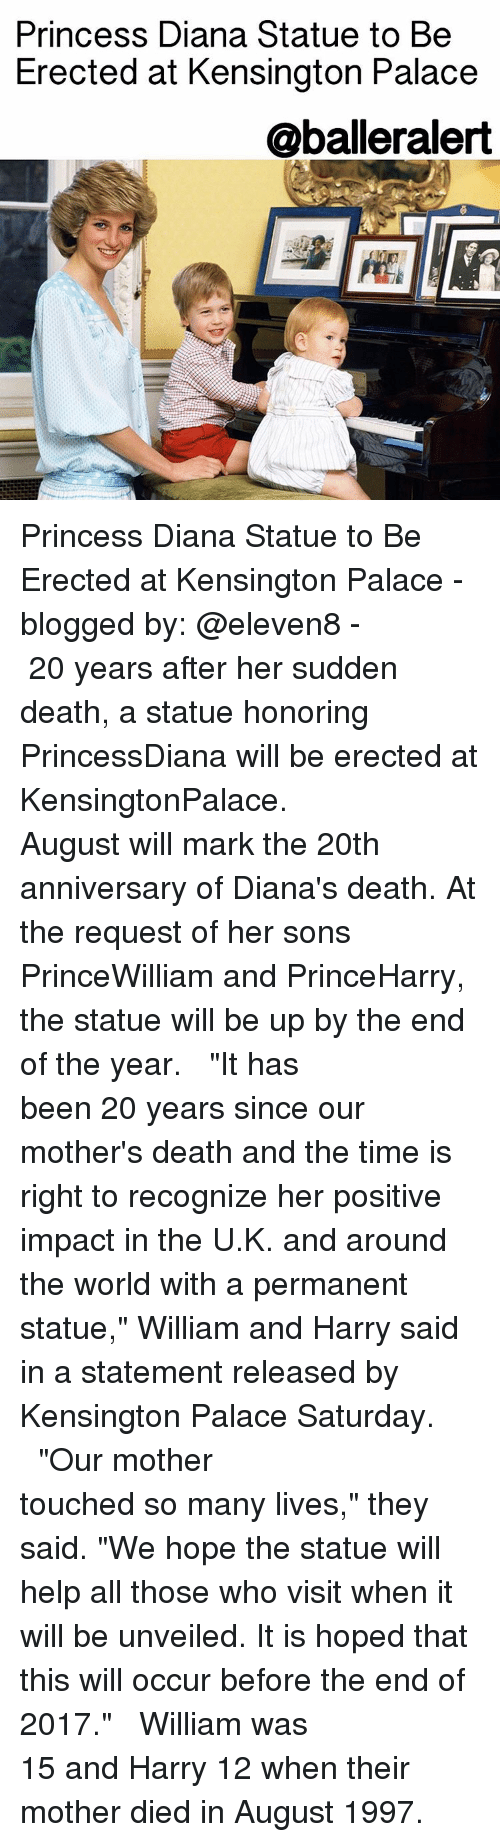 "Baller Alert, Memes, and Princess Diana: Princess Diana Statue to Be  Erected at Kensington Palace  @baller alert Princess Diana Statue to Be Erected at Kensington Palace - blogged by: @eleven8 - ⠀⠀⠀⠀⠀⠀⠀⠀⠀ ⠀⠀⠀⠀⠀⠀⠀⠀⠀ 20 years after her sudden death, a statue honoring PrincessDiana will be erected at KensingtonPalace. ⠀⠀⠀⠀⠀⠀⠀⠀⠀ ⠀⠀⠀⠀⠀⠀⠀⠀⠀ August will mark the 20th anniversary of Diana's death. At the request of her sons PrinceWilliam and PrinceHarry, the statue will be up by the end of the year. ⠀⠀⠀⠀⠀⠀⠀⠀⠀ ⠀⠀⠀⠀⠀⠀⠀⠀⠀ ""It has been 20 years since our mother's death and the time is right to recognize her positive impact in the U.K. and around the world with a permanent statue,"" William and Harry said in a statement released by Kensington Palace Saturday. ⠀⠀⠀⠀⠀⠀⠀⠀⠀ ⠀⠀⠀⠀⠀⠀⠀⠀⠀ ""Our mother touched so many lives,"" they said. ""We hope the statue will help all those who visit when it will be unveiled. It is hoped that this will occur before the end of 2017."" ⠀⠀⠀⠀⠀⠀⠀⠀⠀ ⠀⠀⠀⠀⠀⠀⠀⠀⠀ William was 15 and Harry 12 when their mother died in August 1997."